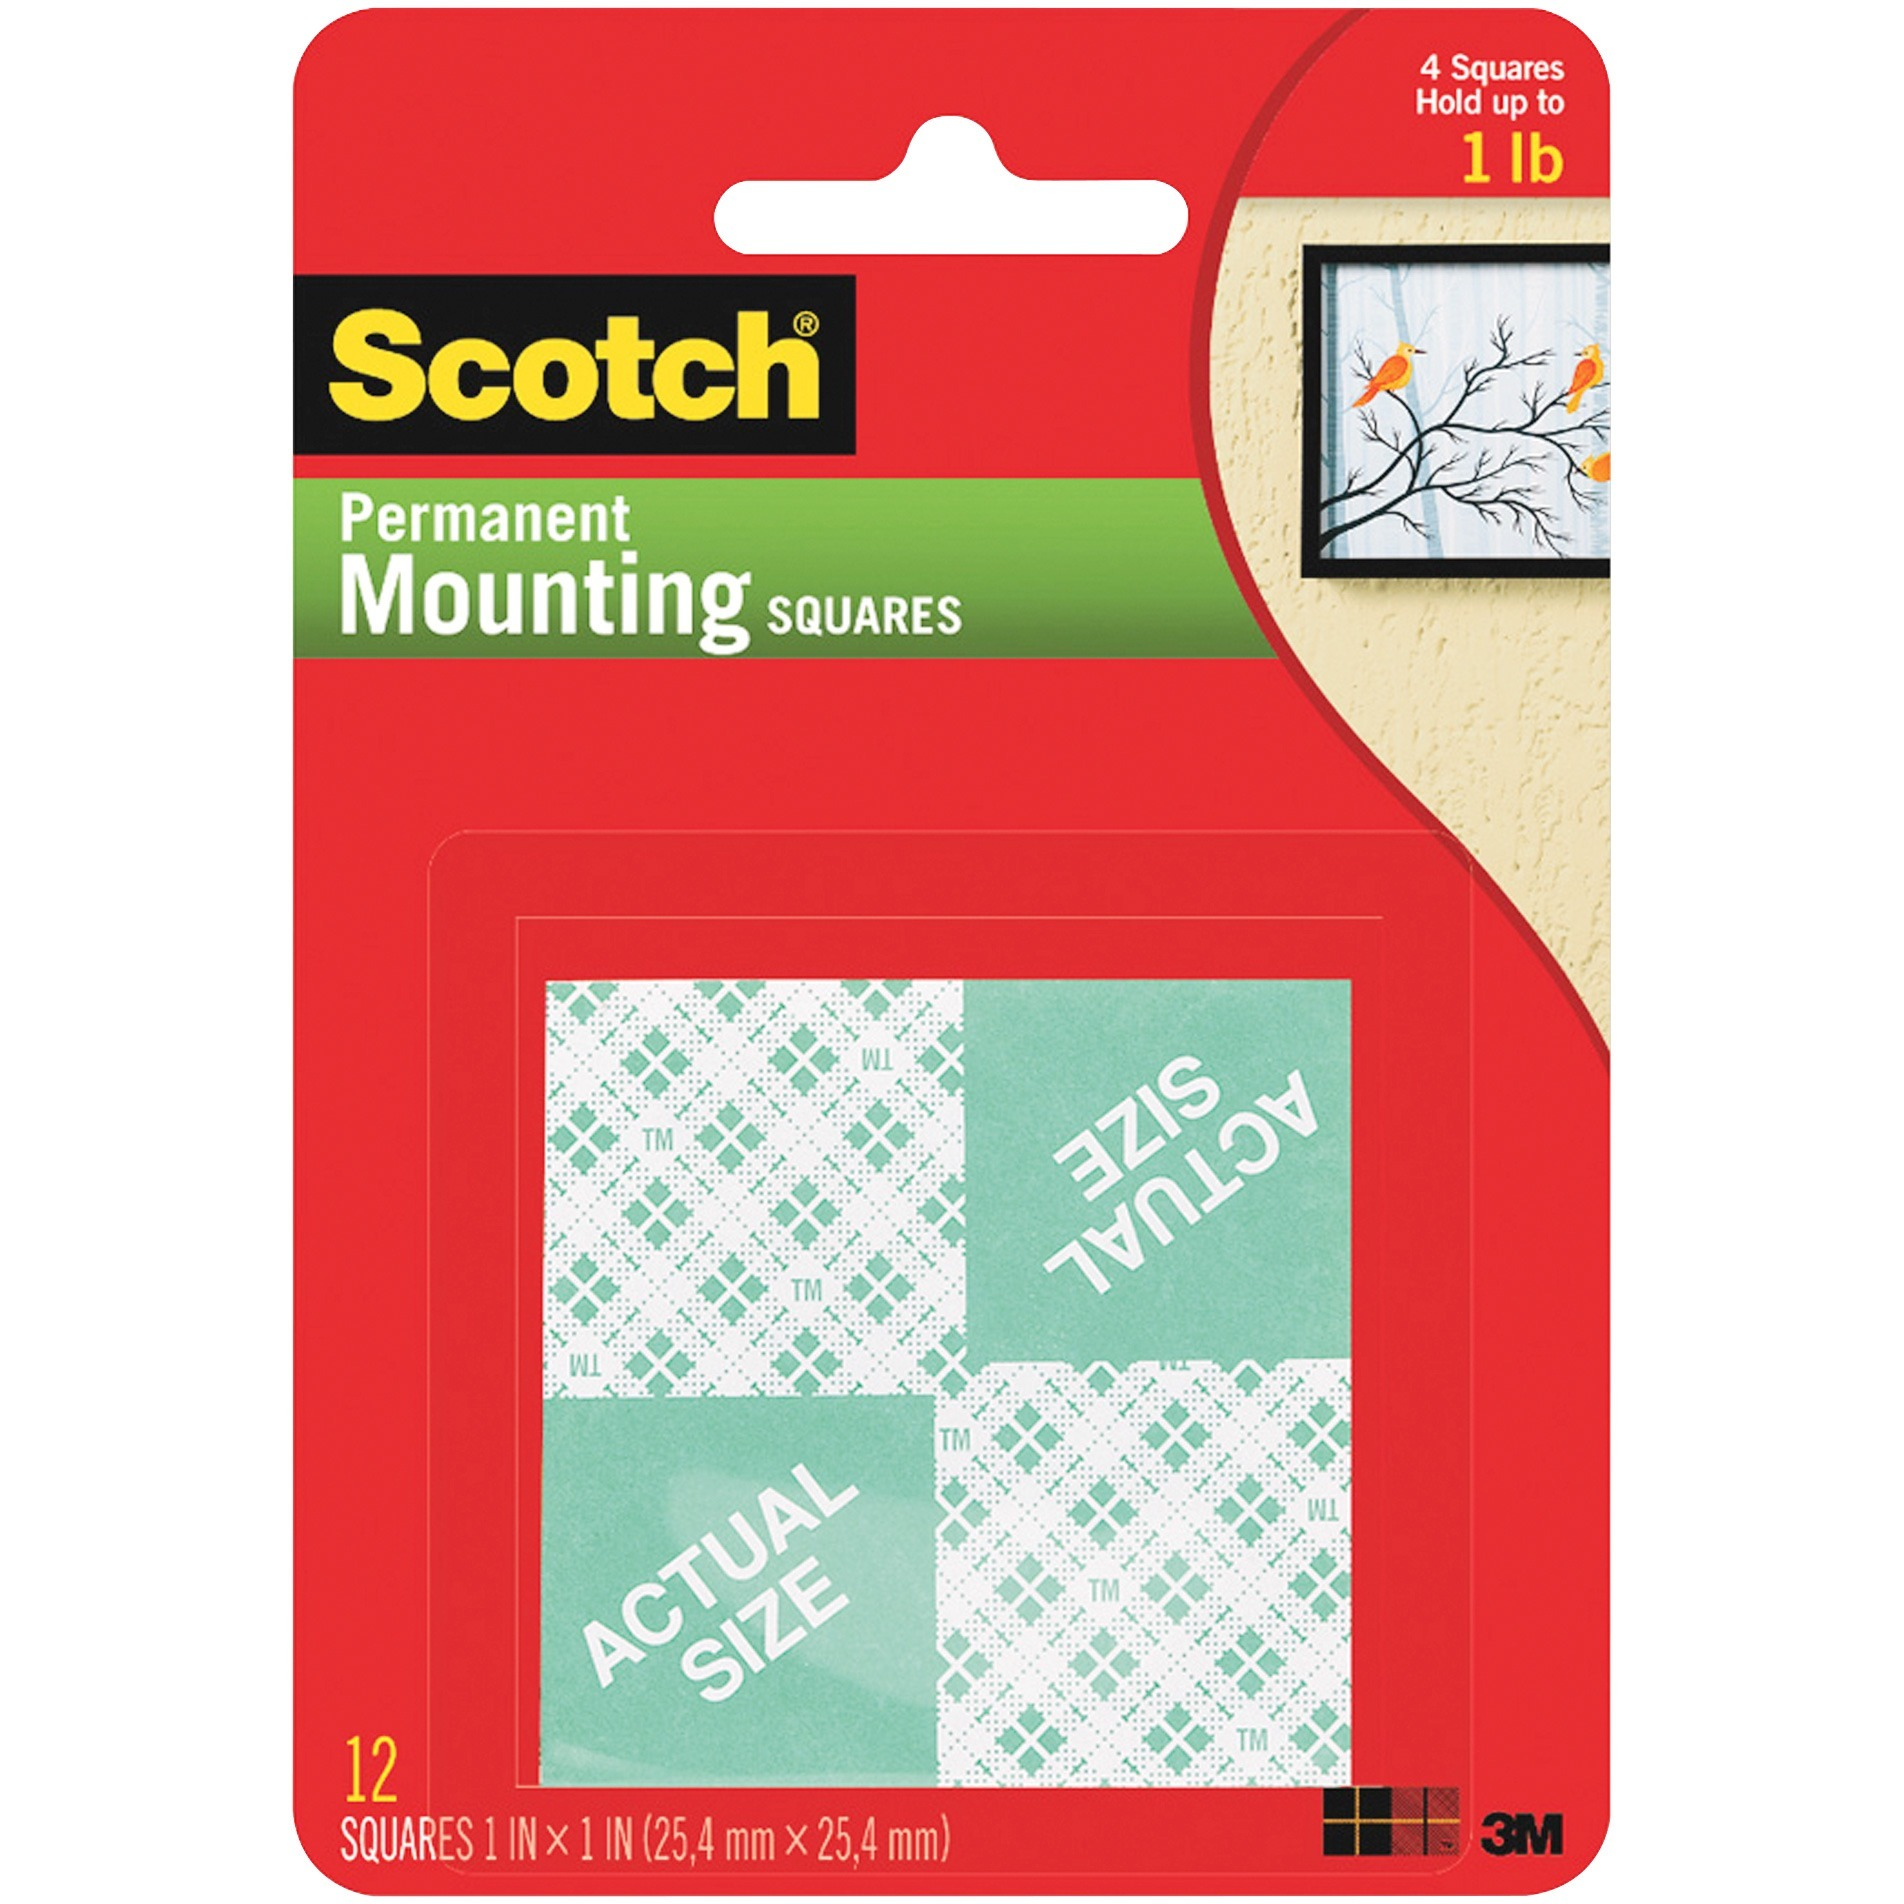 Scotch, MMM111, Foam Mounting Squares, 16 / Pack, White